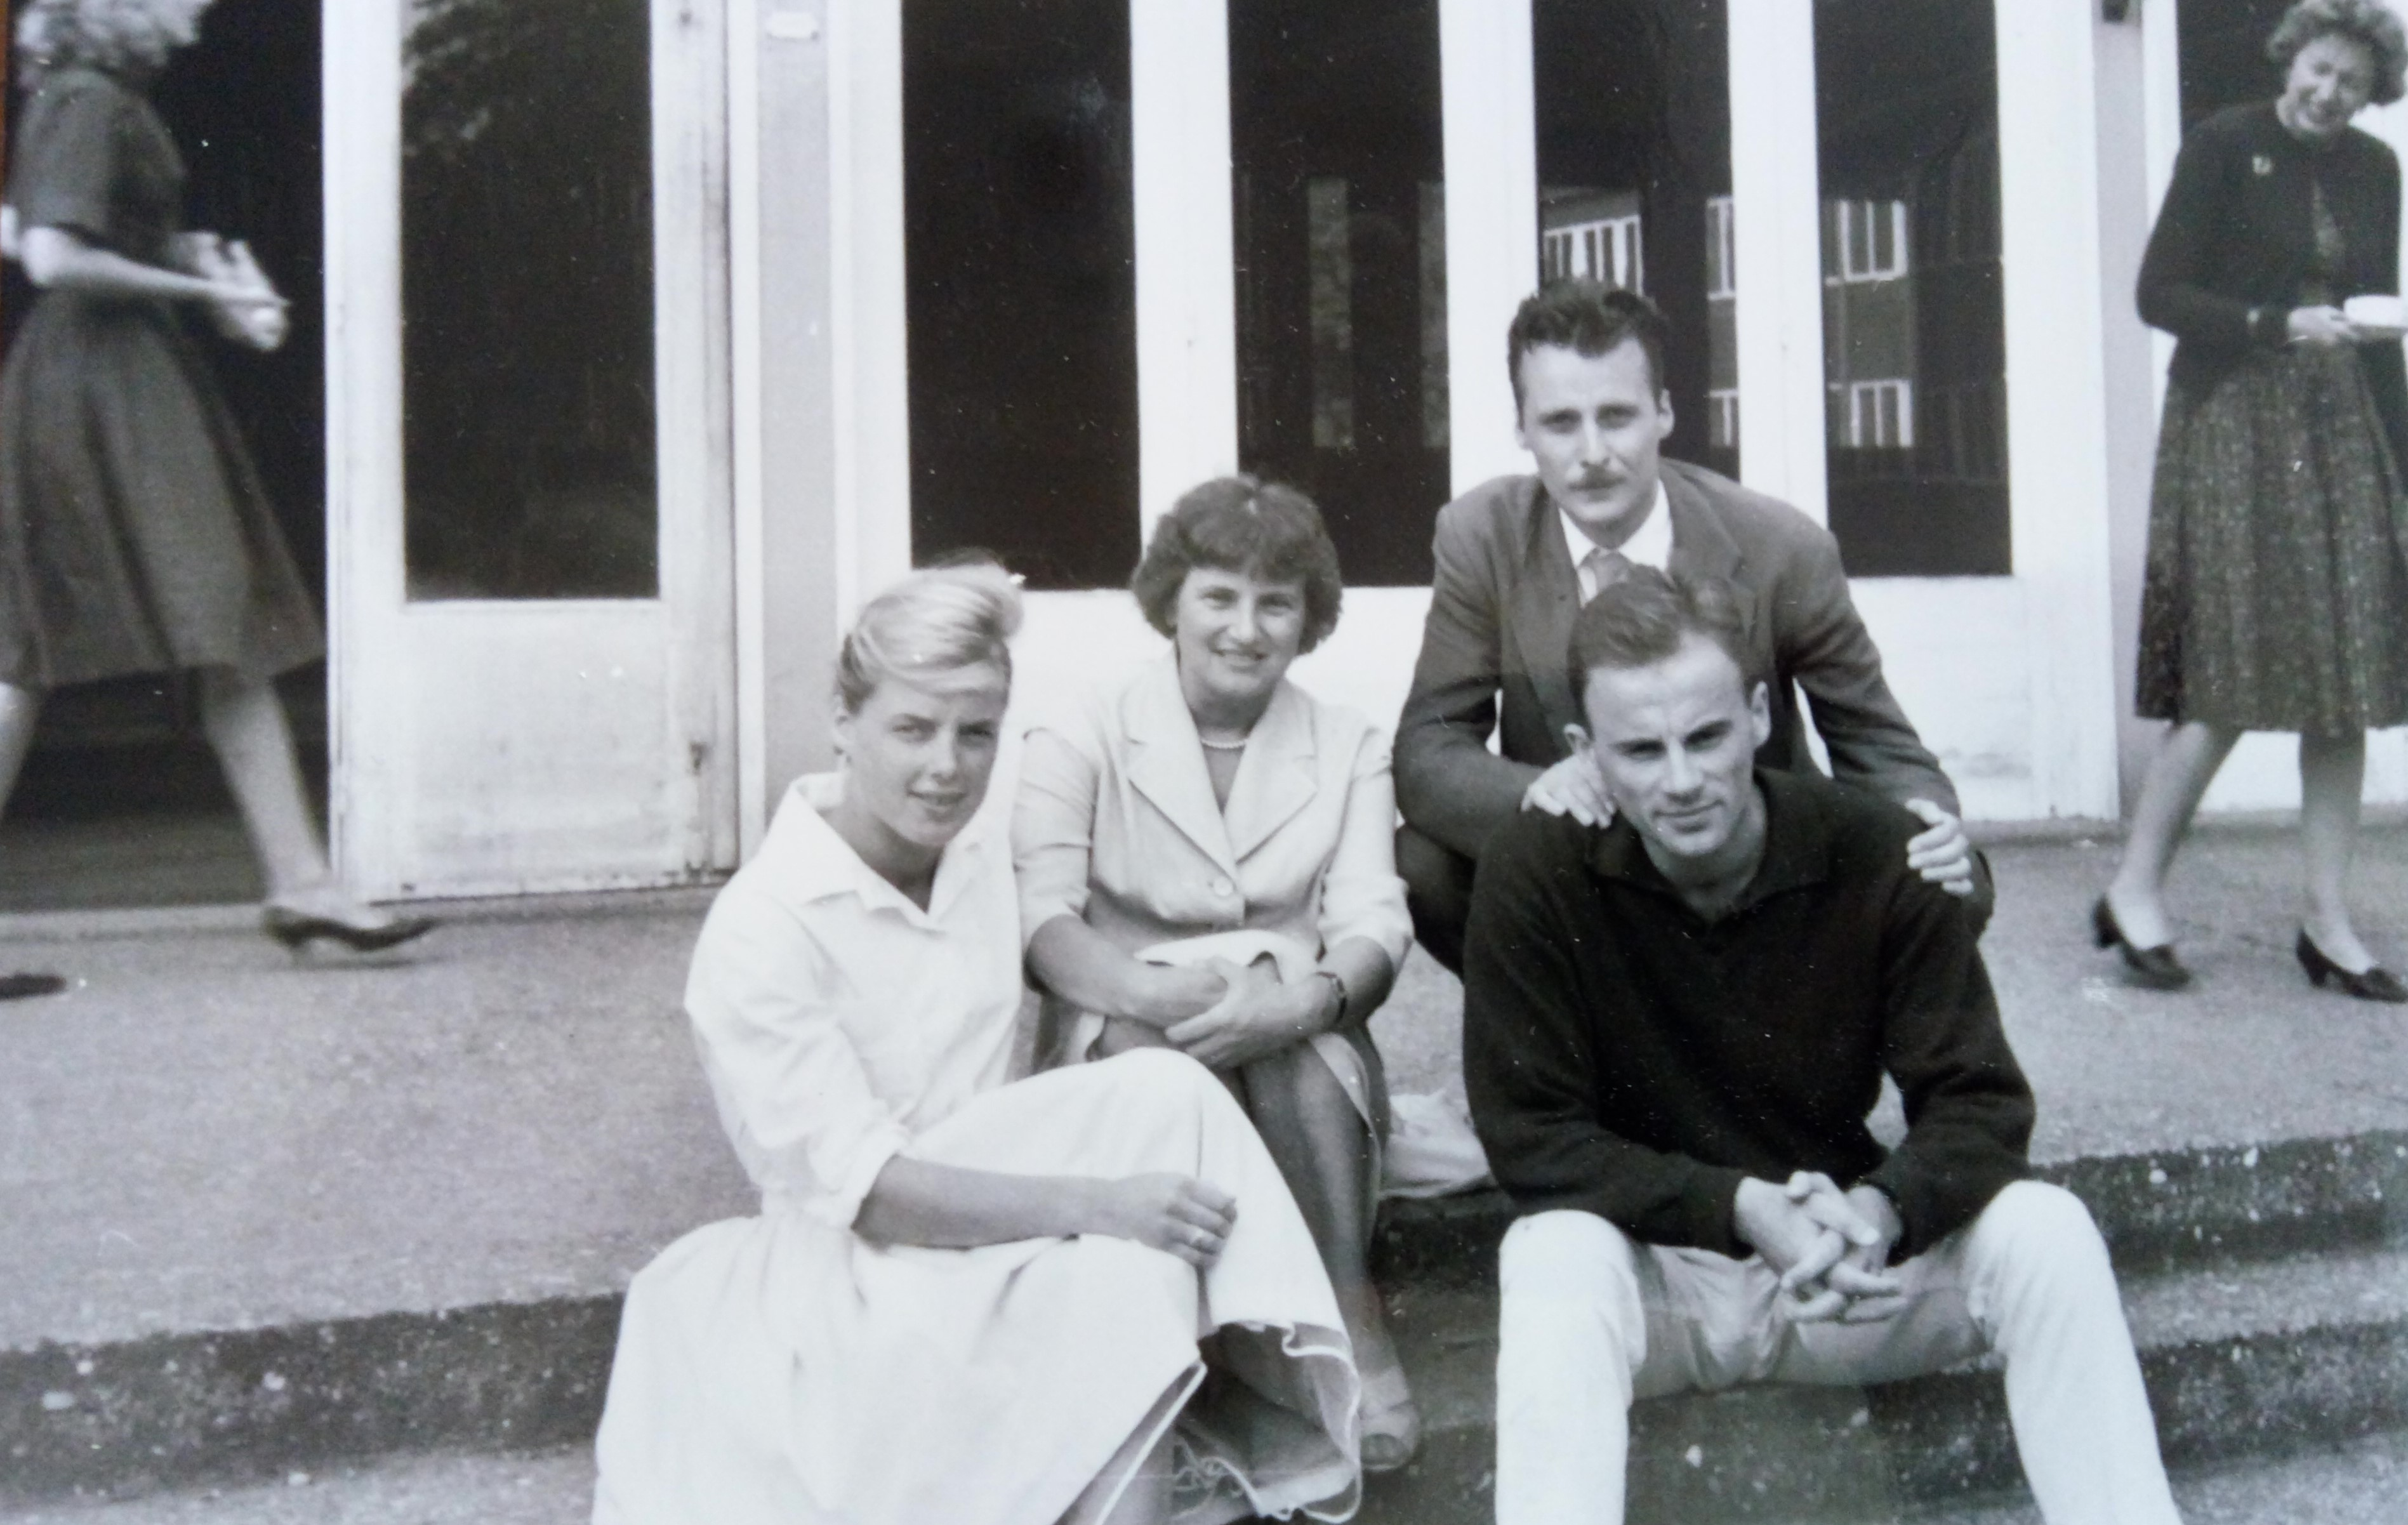 The Kušans (Zdenka and Jakša above) and Salajs (Barbara and Branko in front) at the summer seminar of the Free European University in Exile, 1959-1961, Jakša Kušan Personal Papers